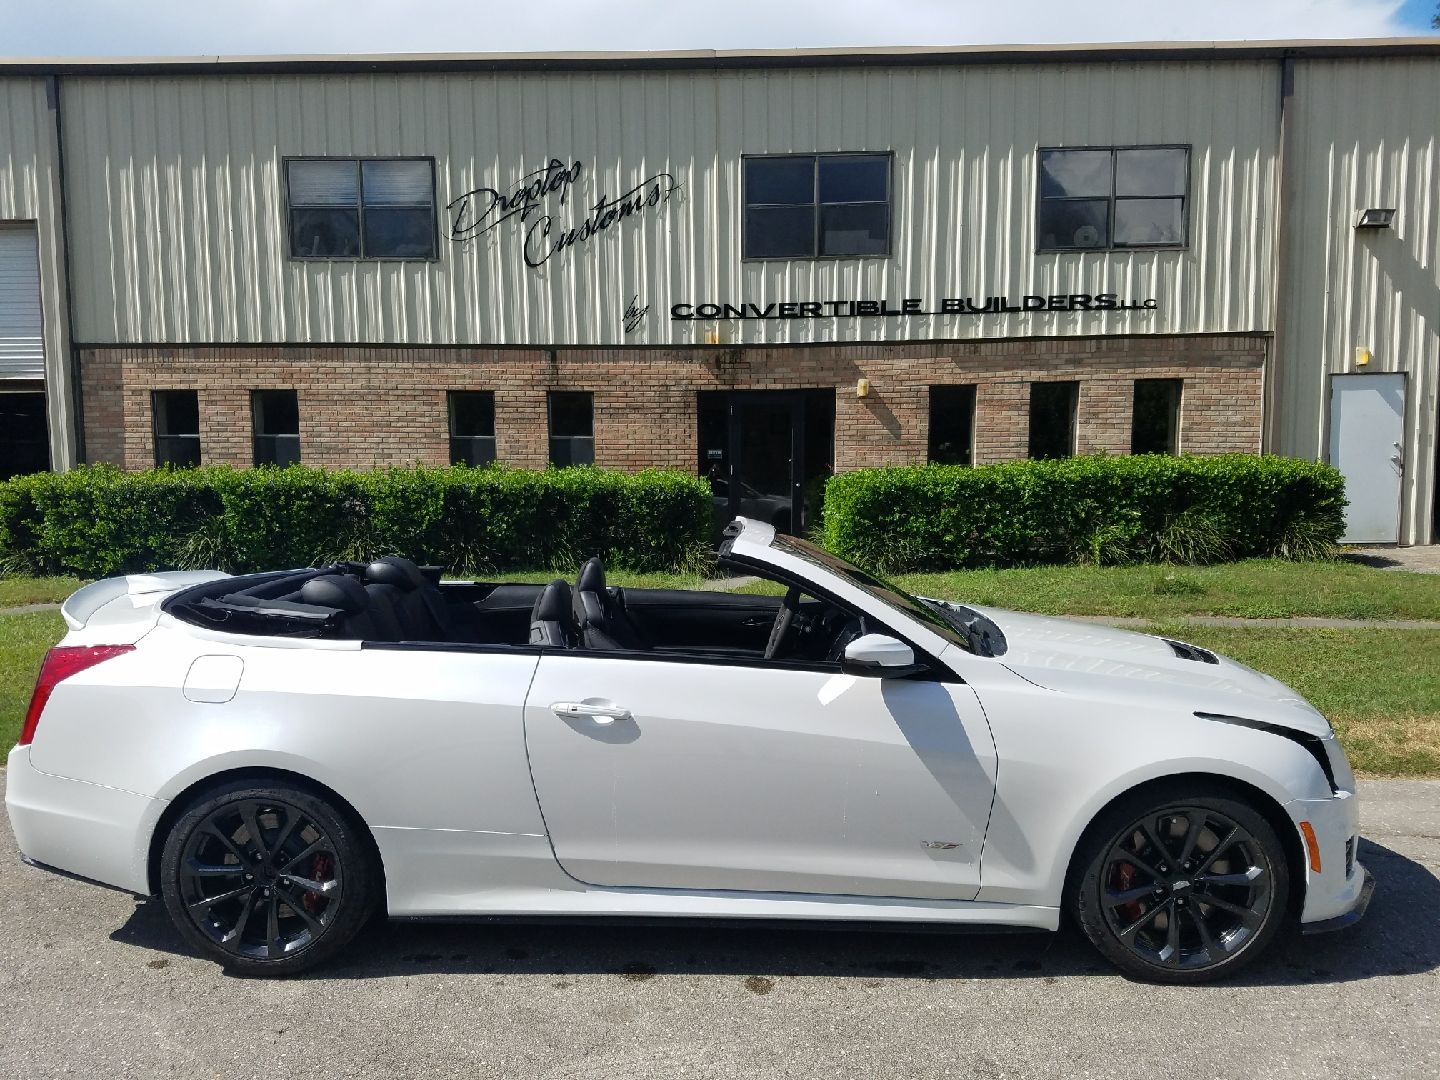 White Cadillac ATS Convertible Right Side Top Down